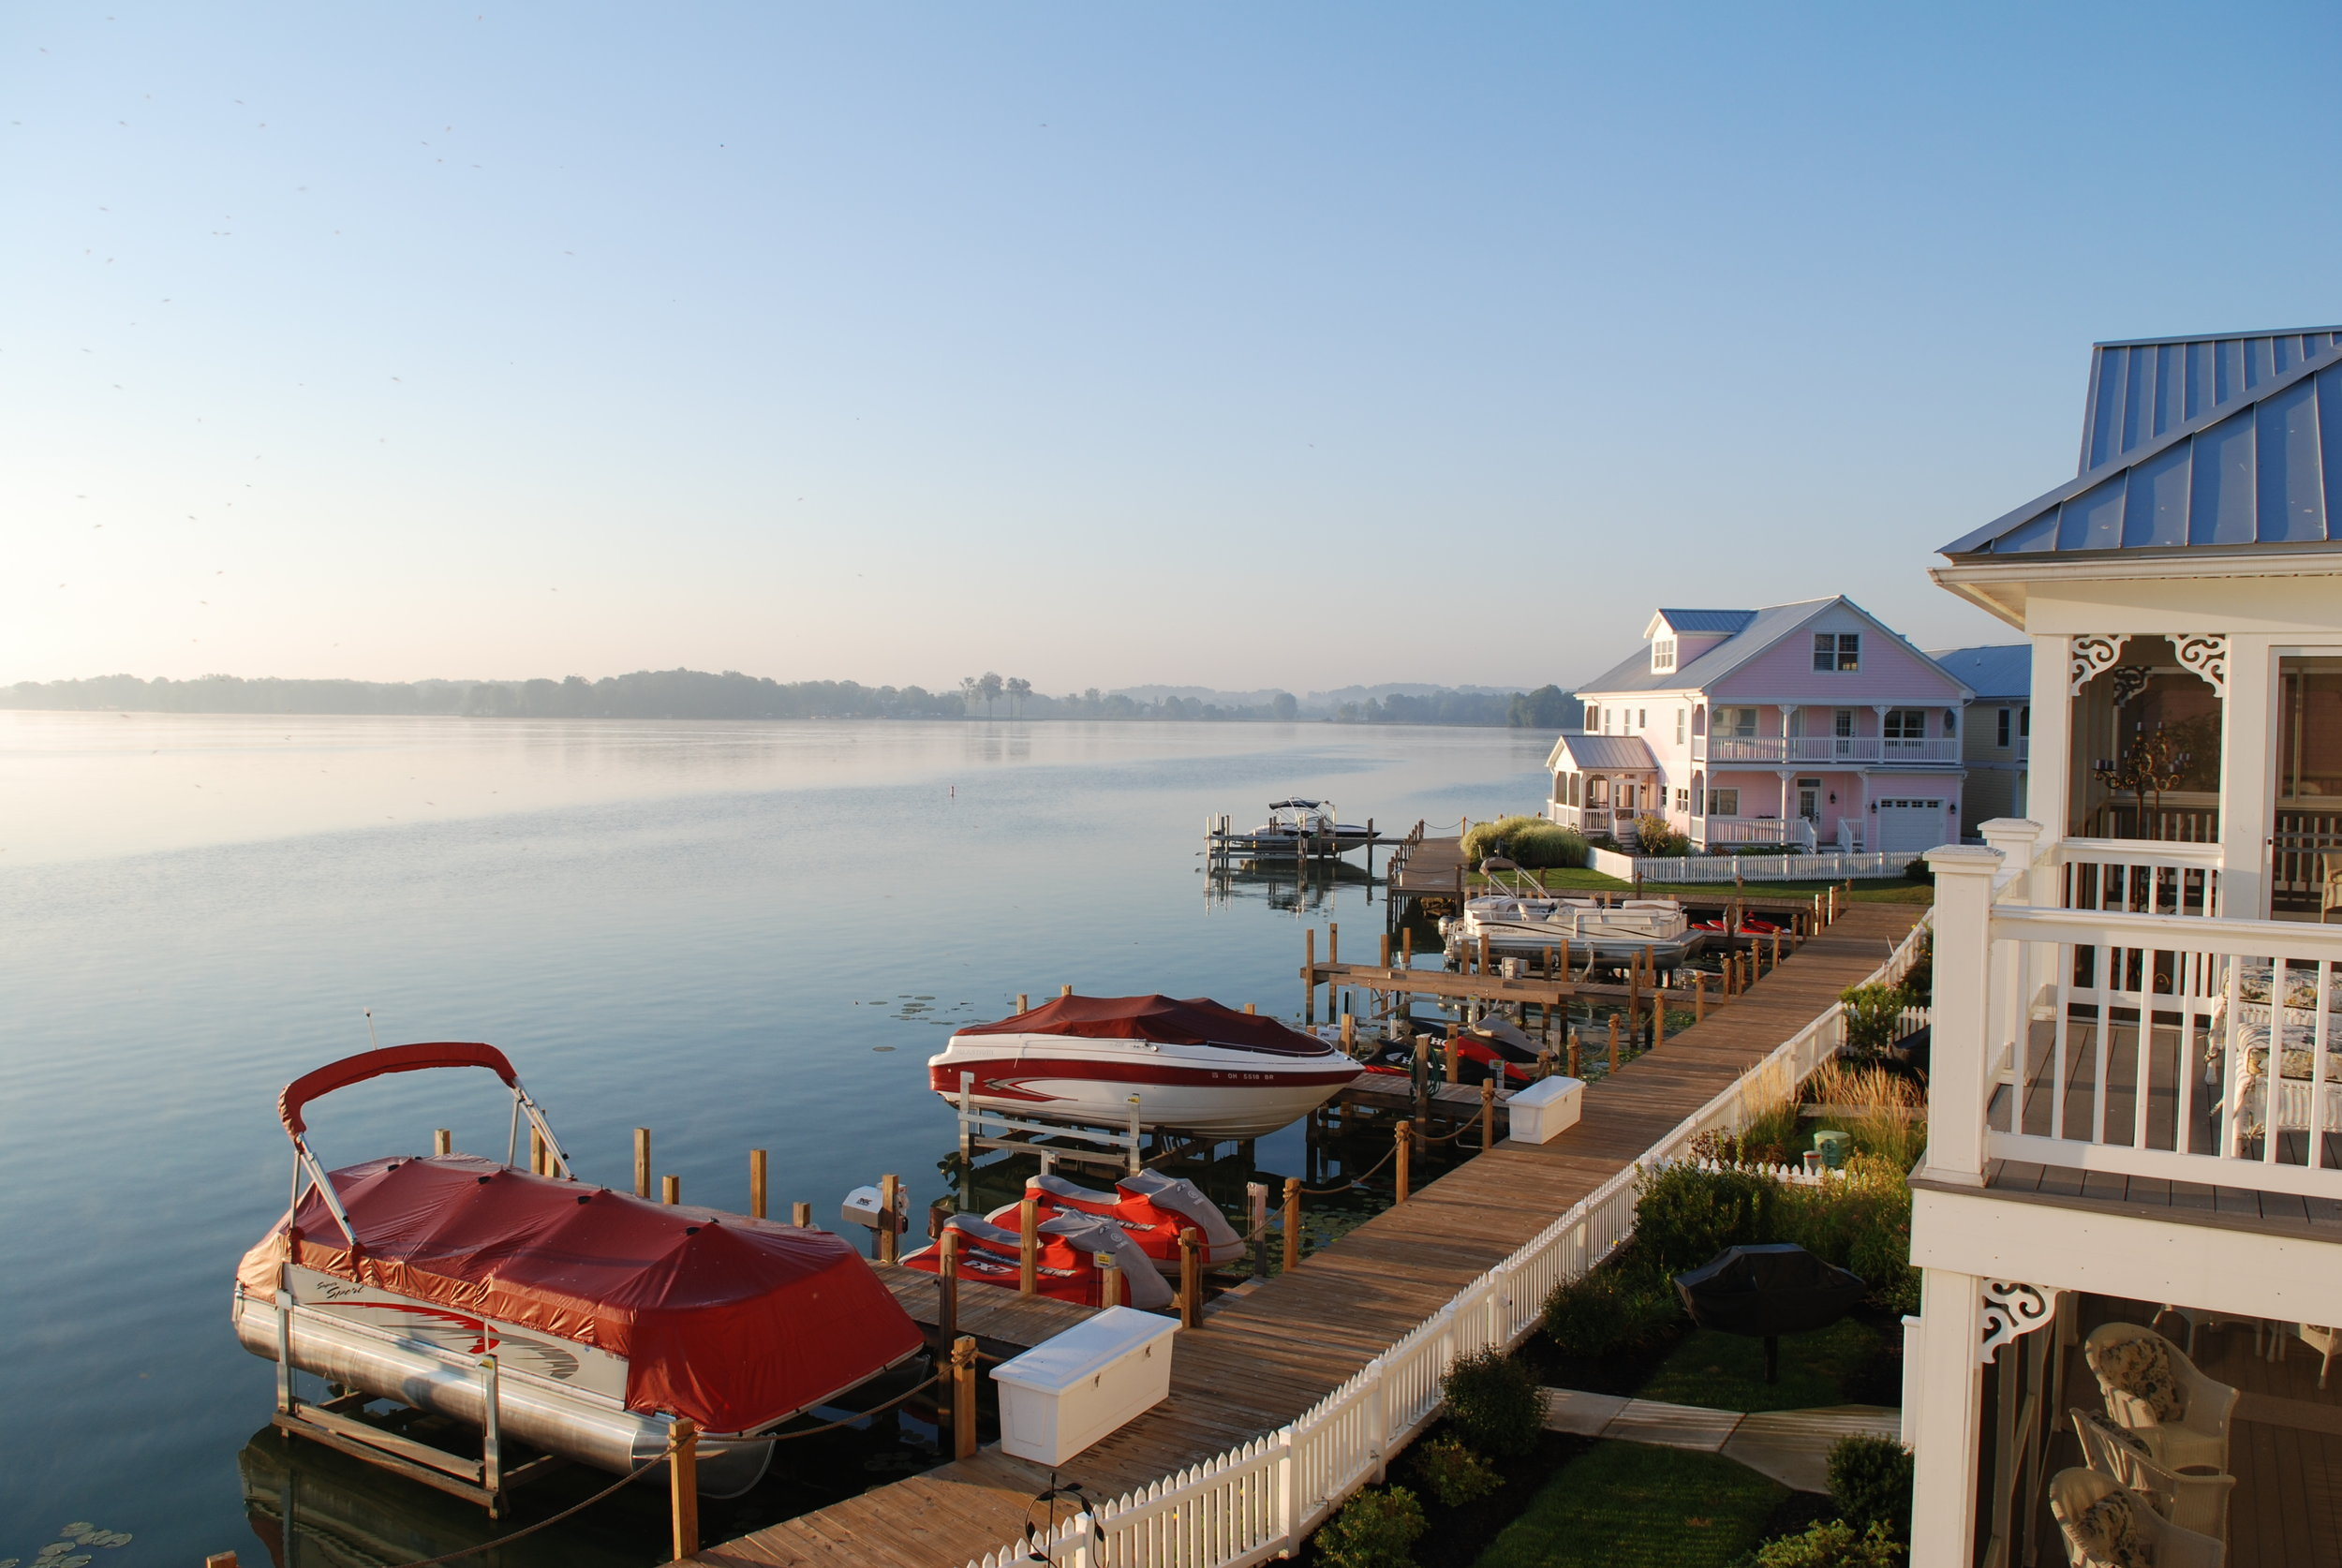 Explore living on the lake by calling e-Merge Real Estate!